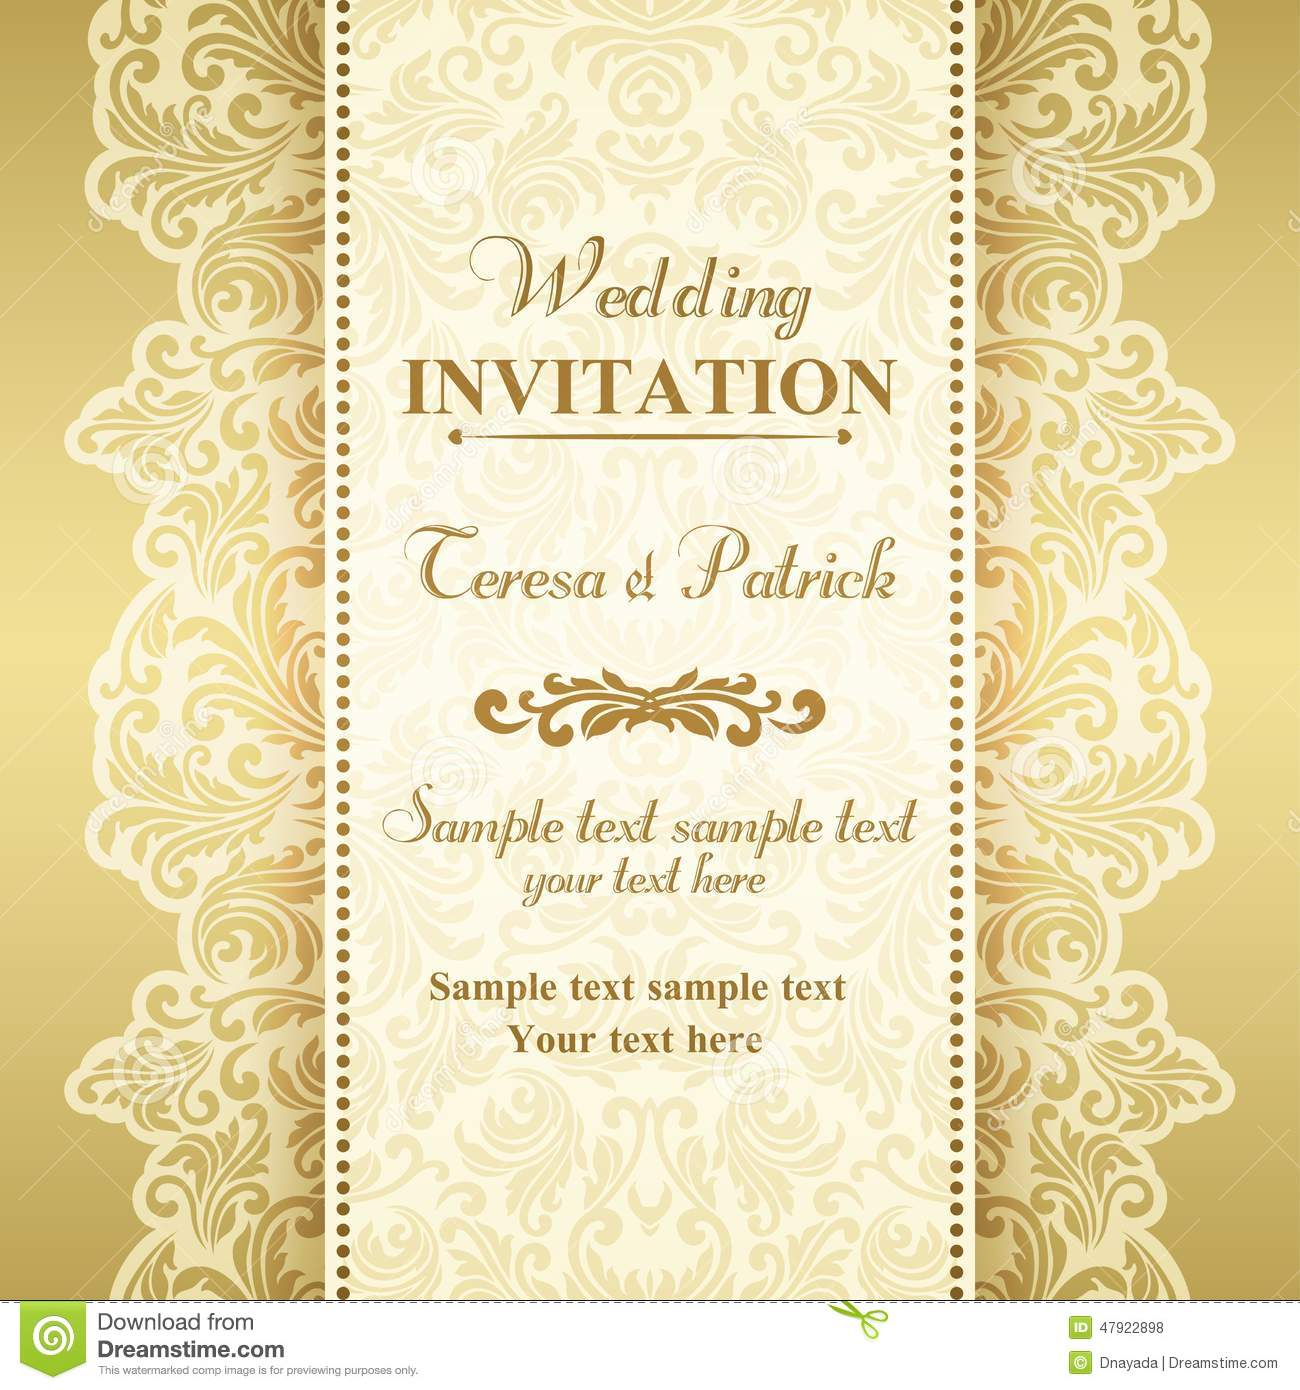 Baroque Wedding Invitation, Gold And Beige Stock Vector ...